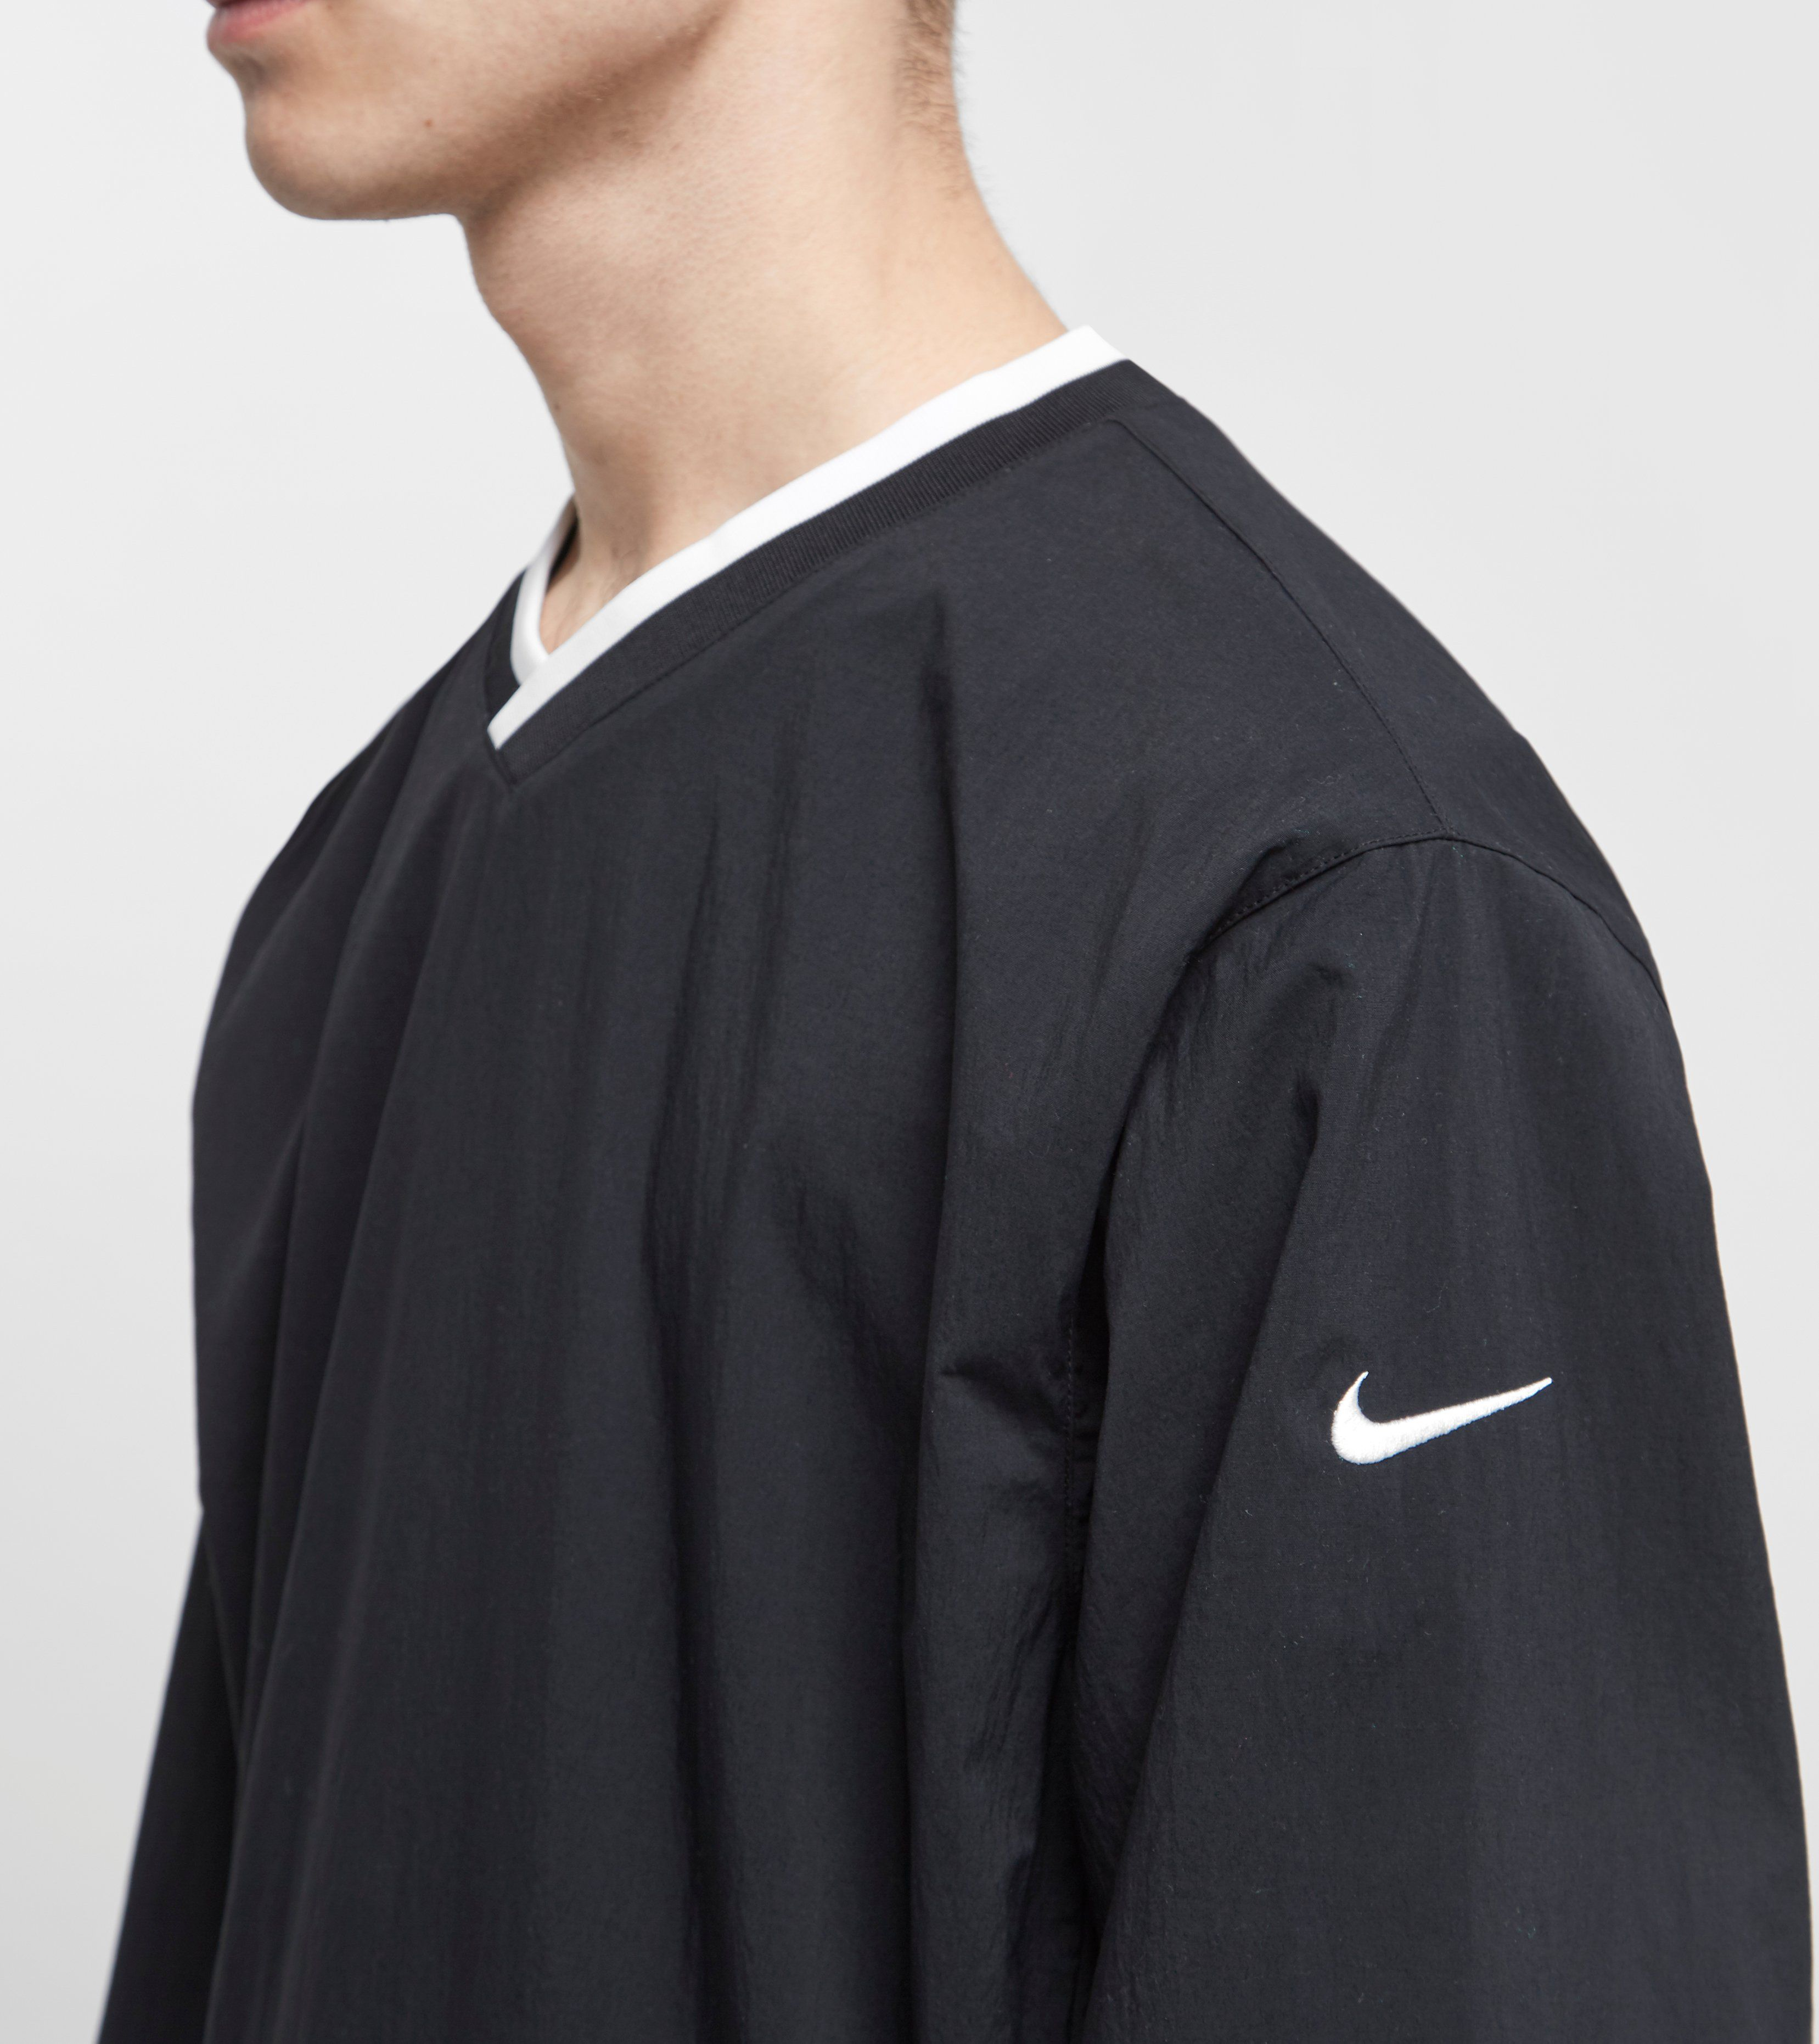 Nike SB Windbreaker Pullover Top